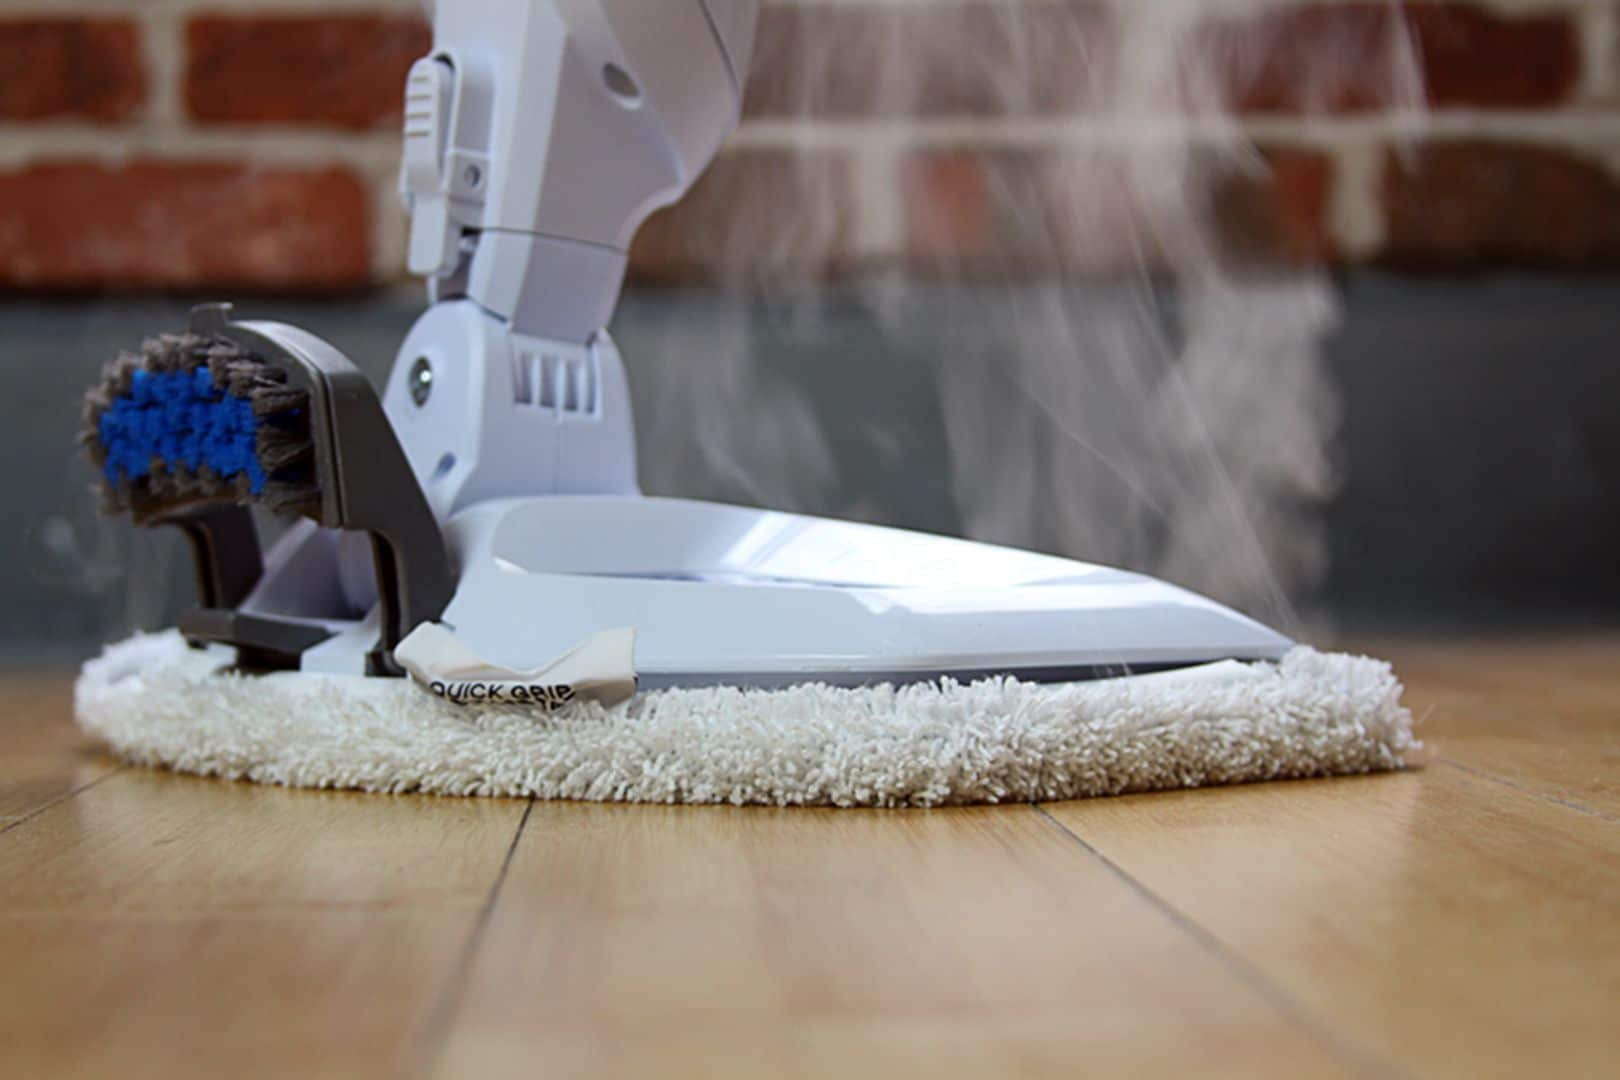 Check Out The Benefits of Using a Steam Mop